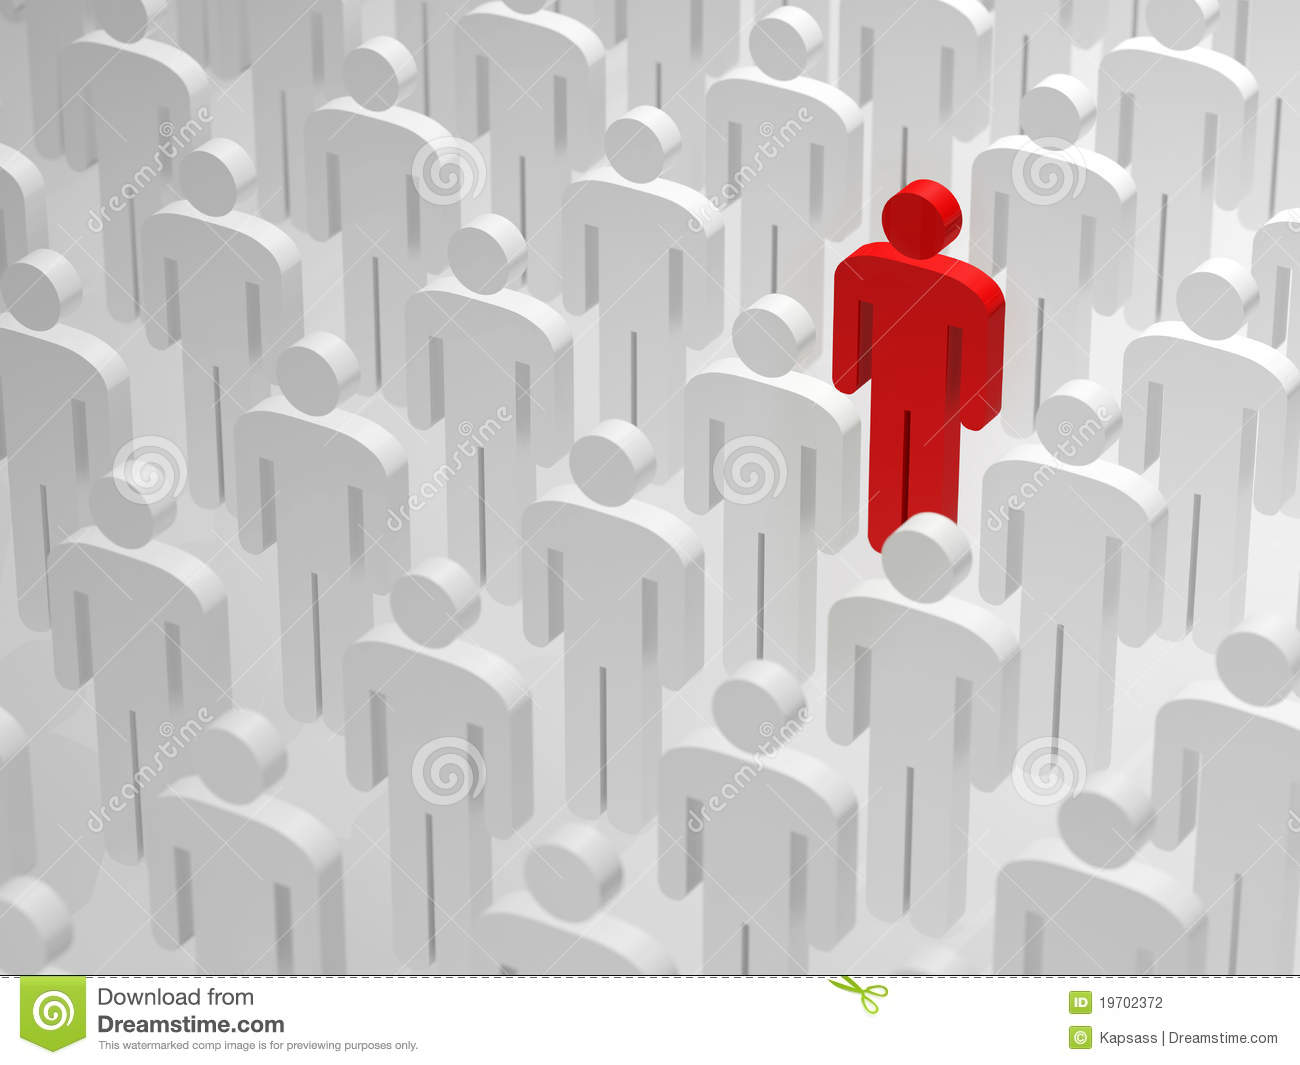 Being different and standing out from the crowd